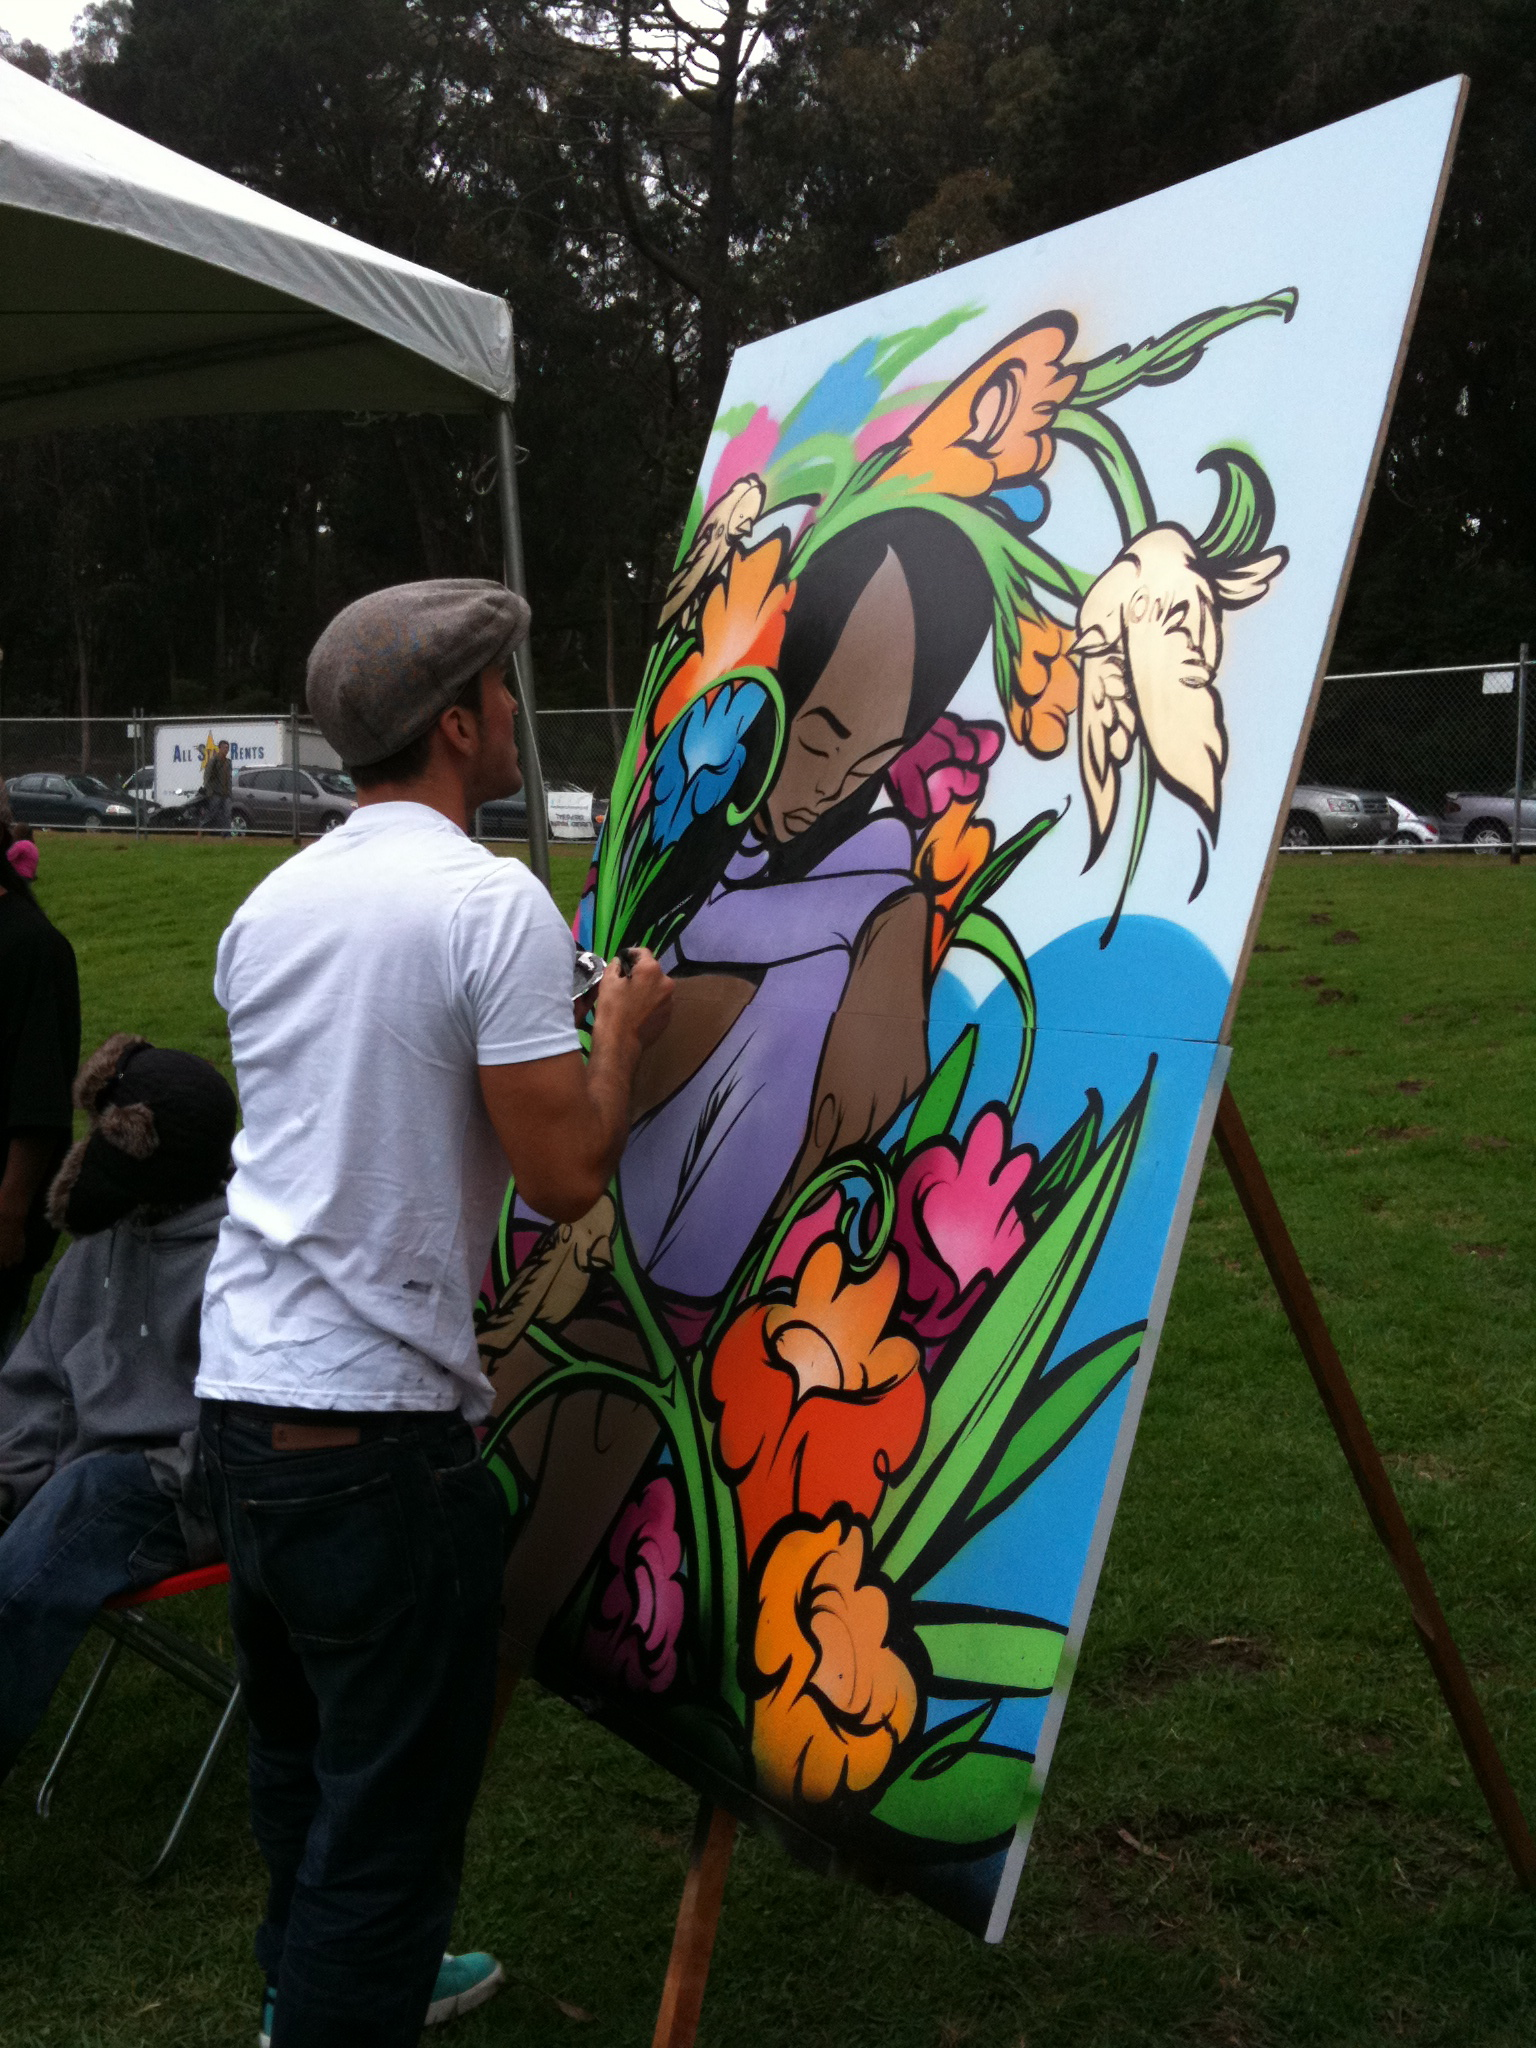 img 0260 Sam Flores, recap: live painting in Golden Gate Park upper playground Sam Flores power to the peaceful paint live painting graffiti fifty24sf gallery art